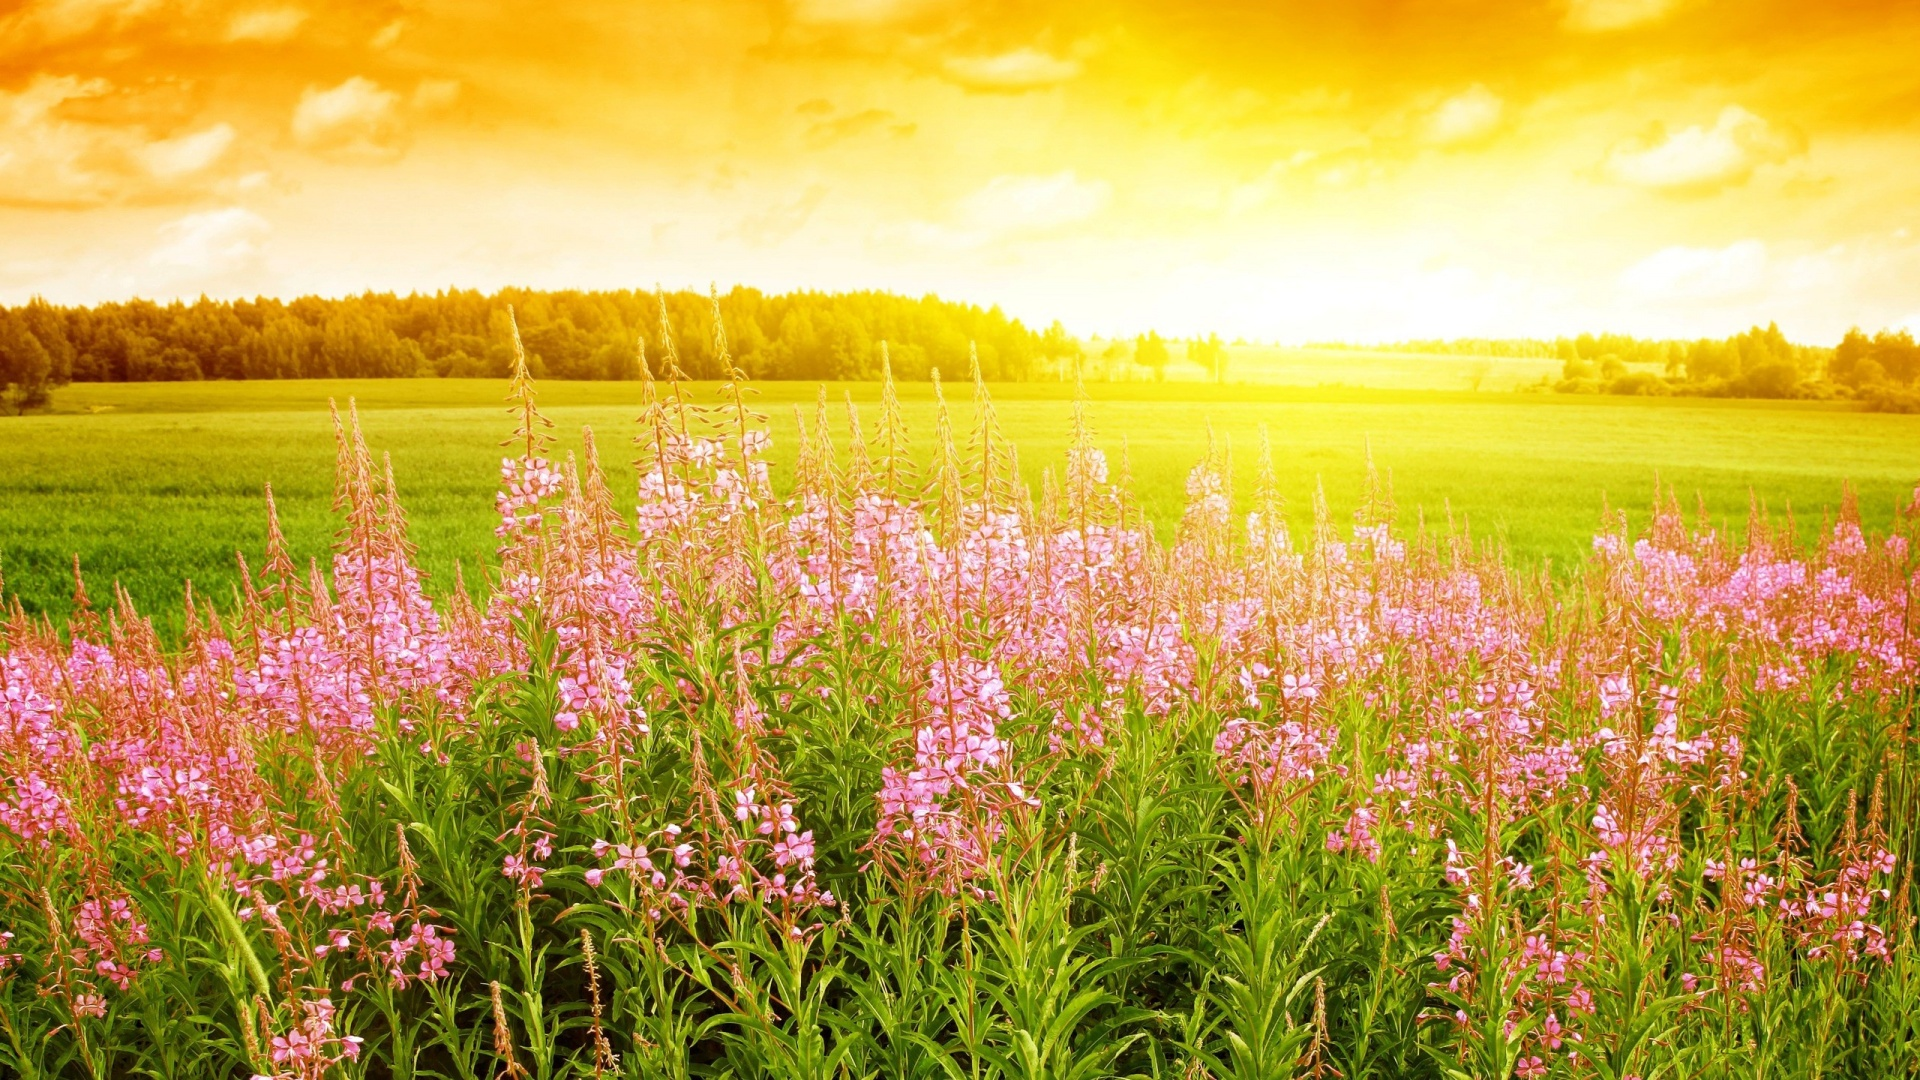 Meadow Backgrounds on Wallpapers Vista